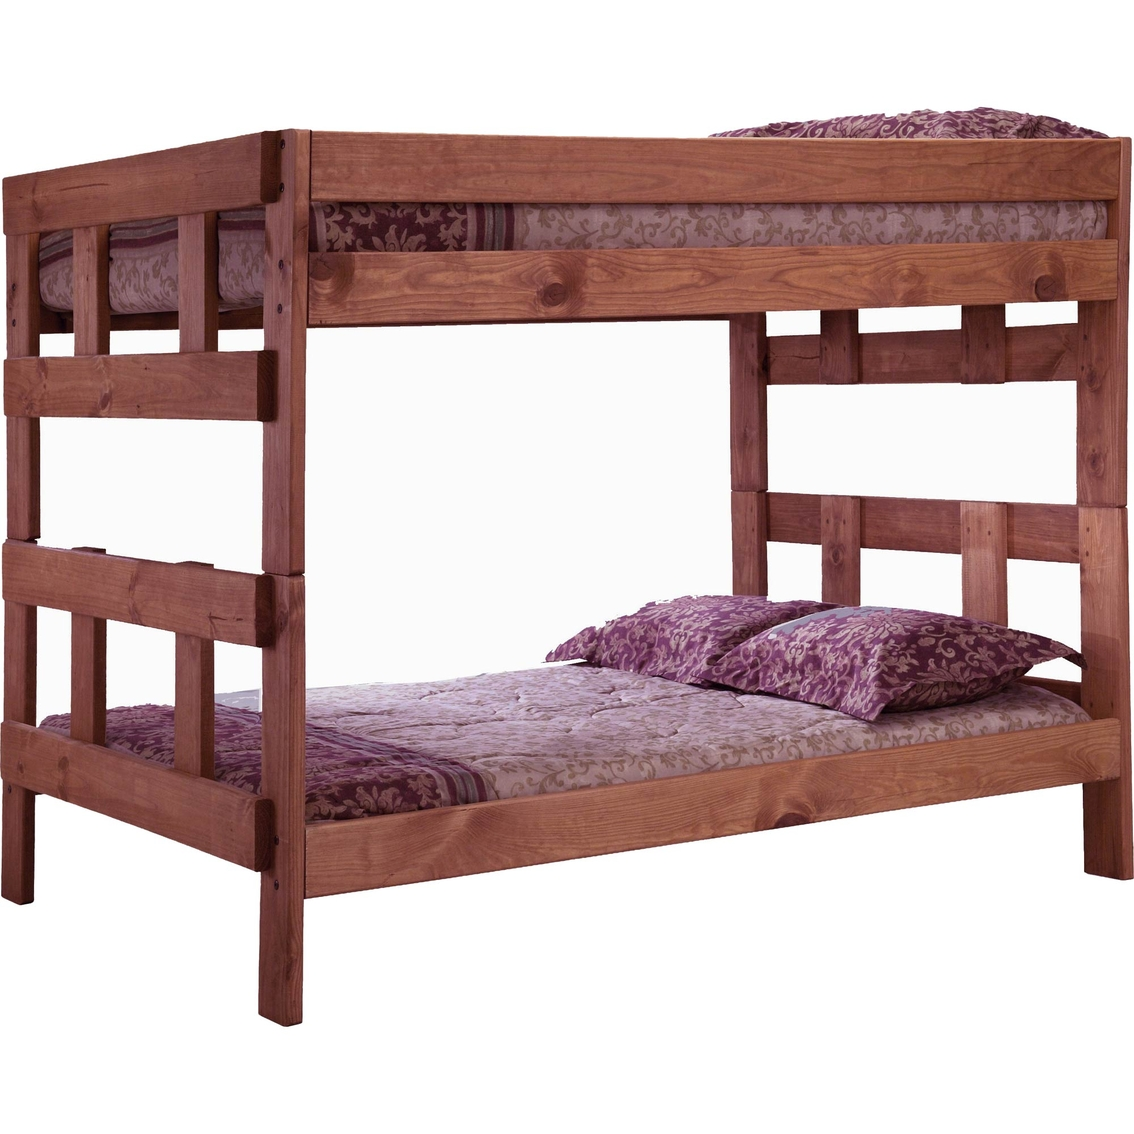 Chelsea Home Furniture Full Over Full Bunk Bed Juvenile Beds Shop The Exchange